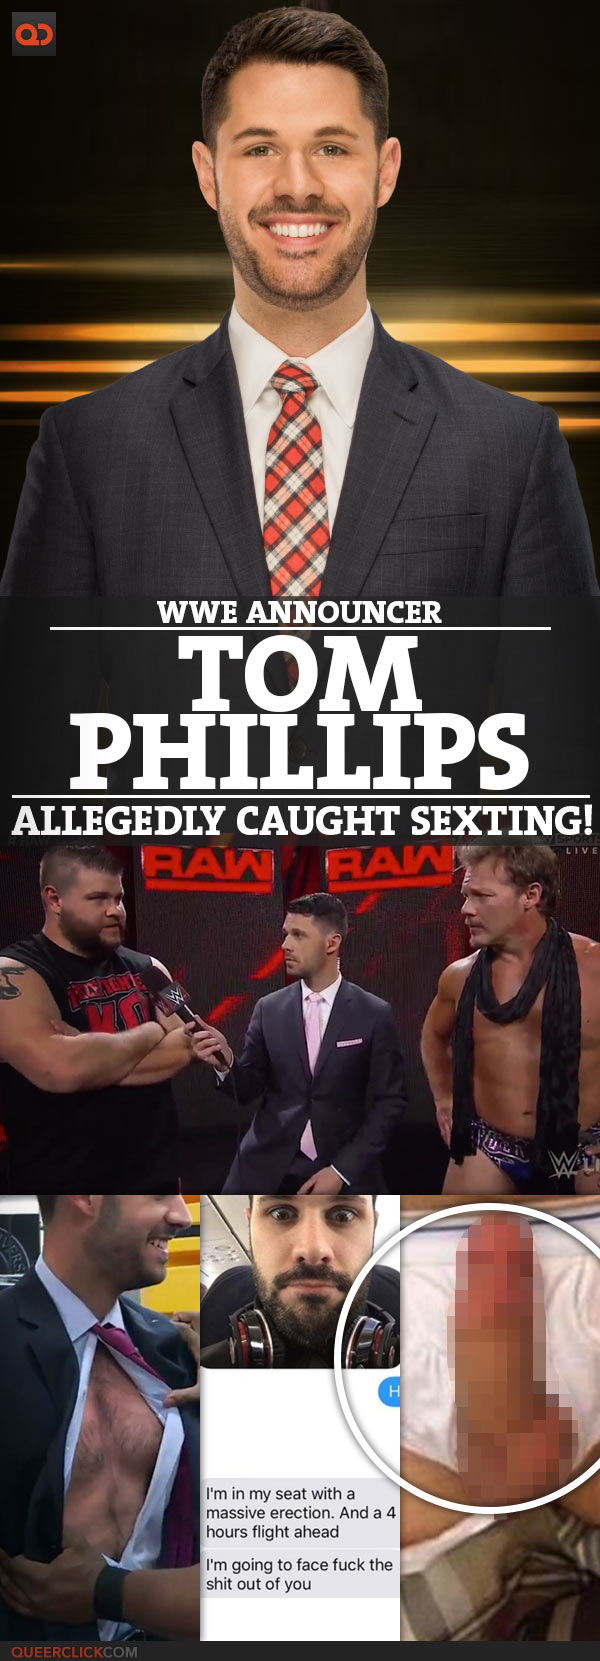 Tom Phillips, WWE Announcer, Allegedly Caught Sexting!